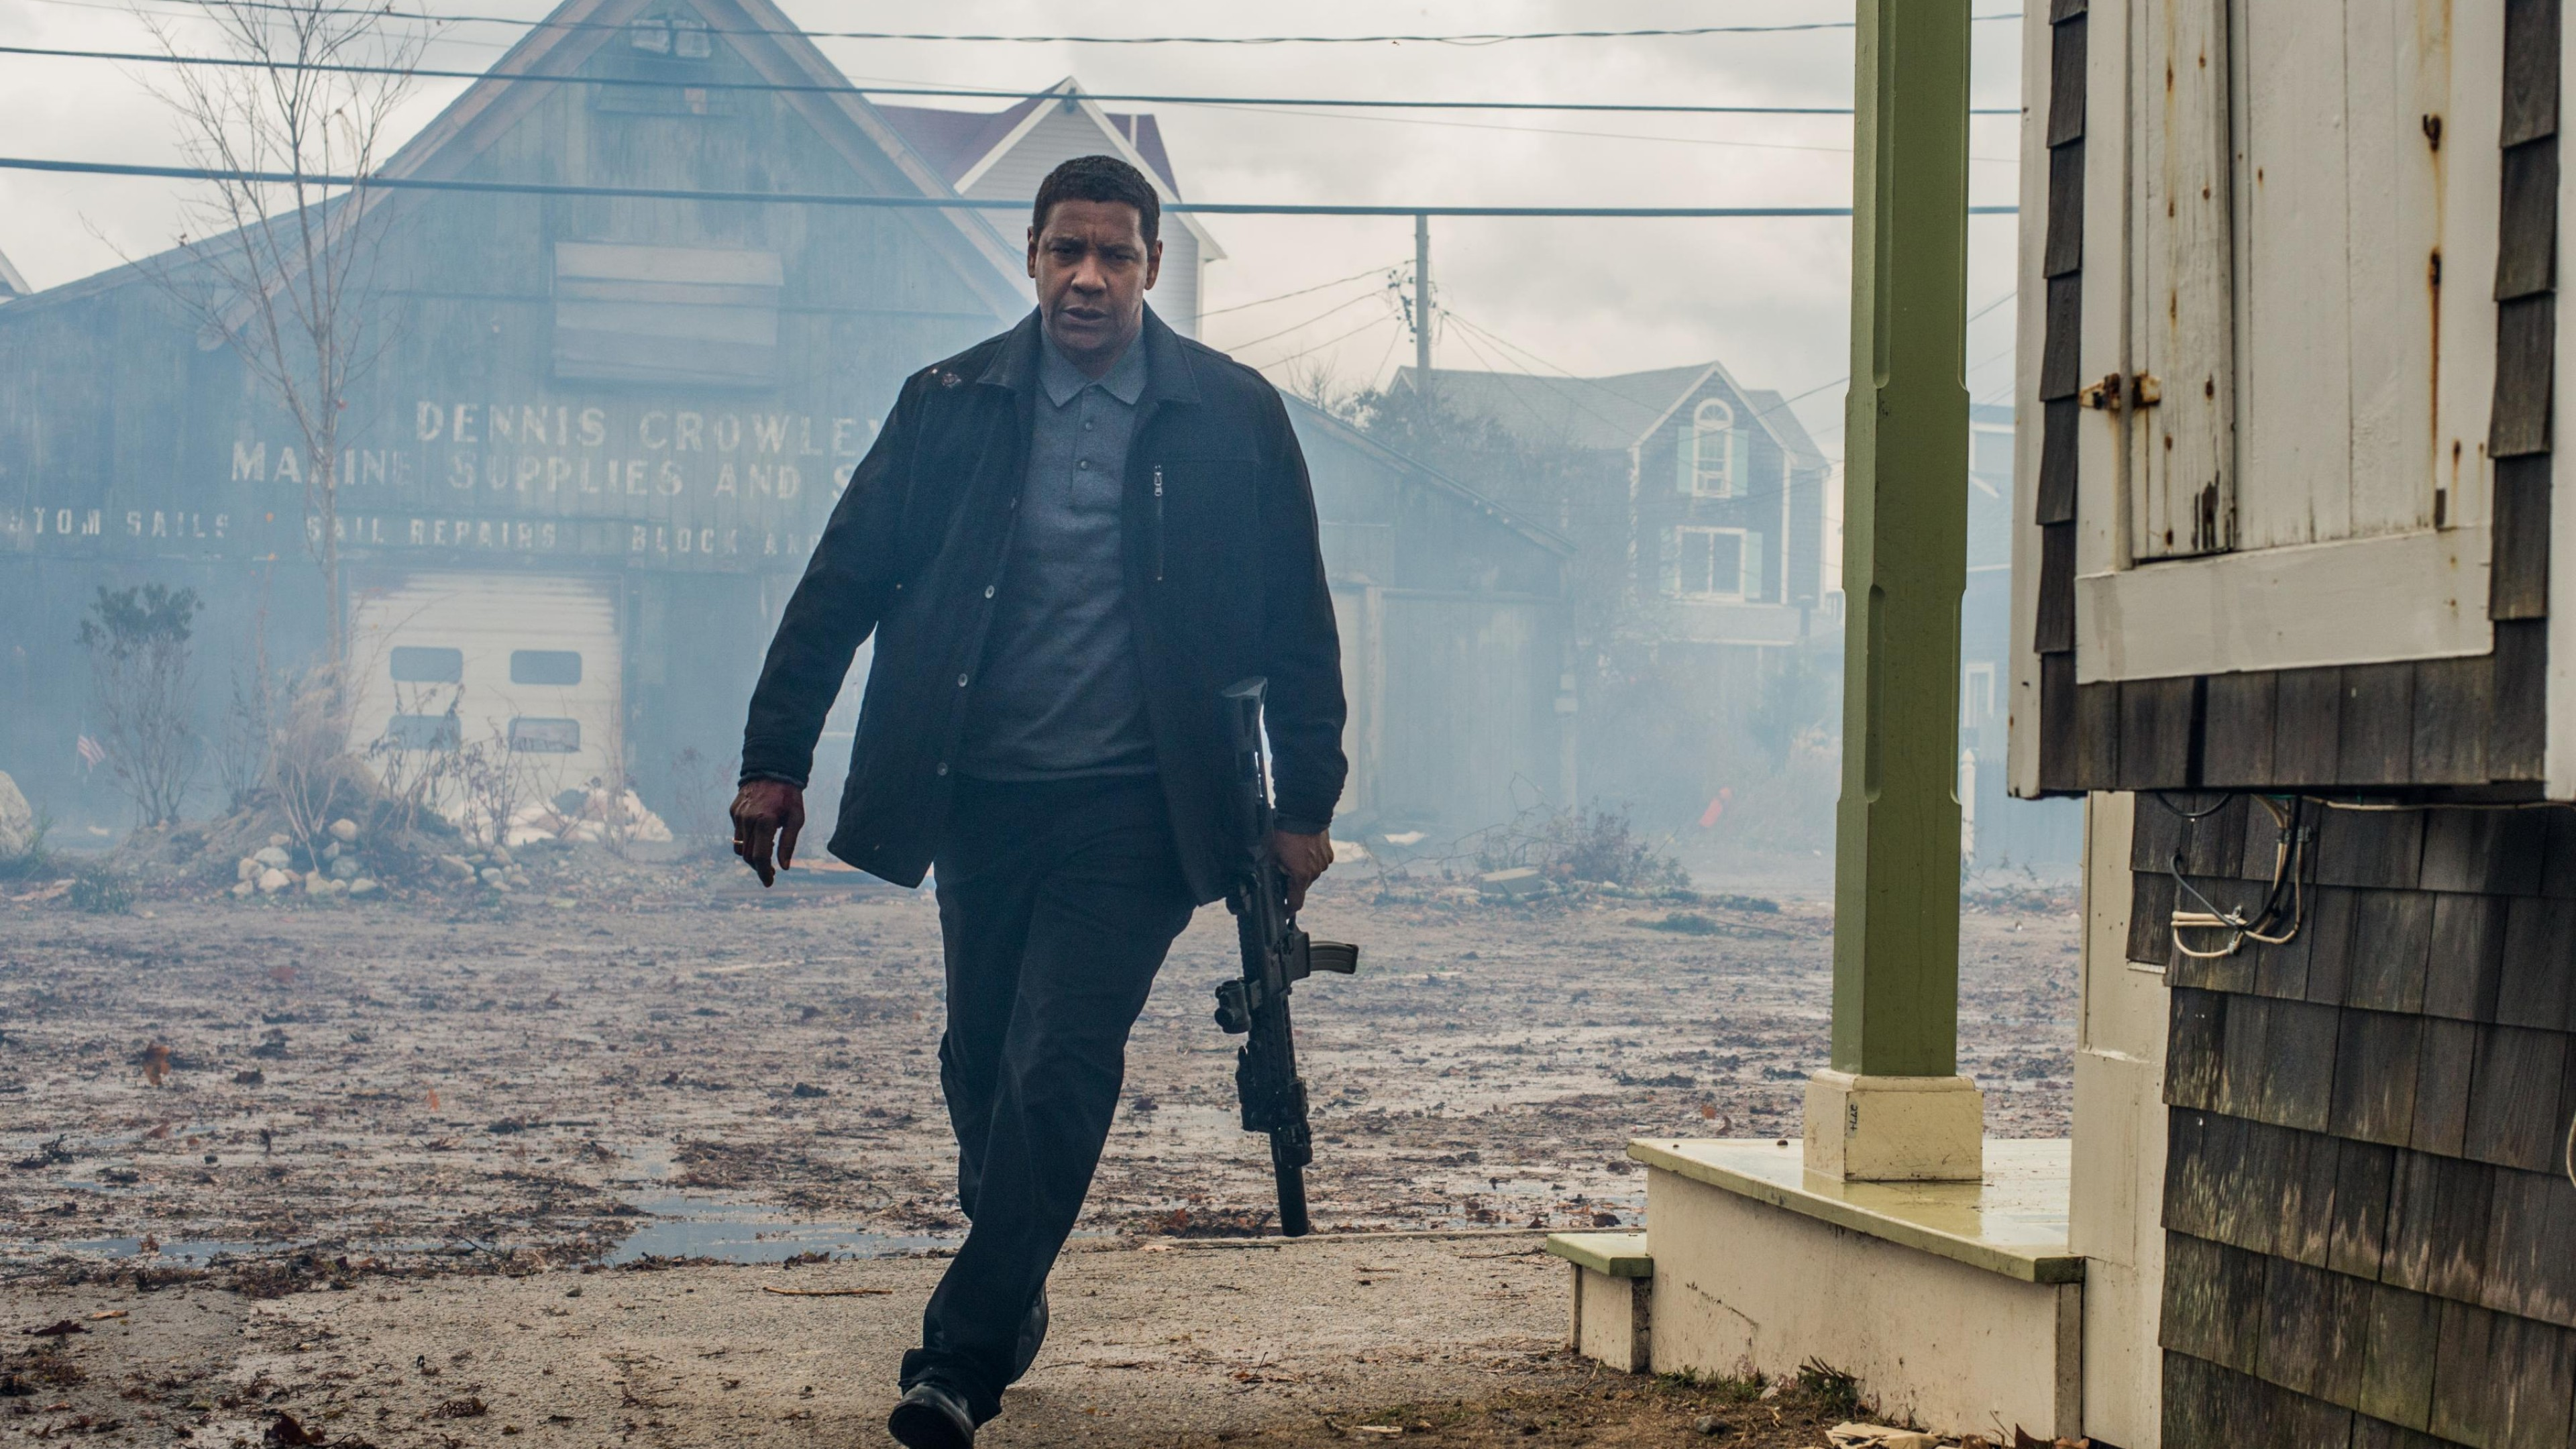 Hd Wallpapers Of Nail Art Wallpaper The Equalizer 2 Denzel Washington 4k Movies